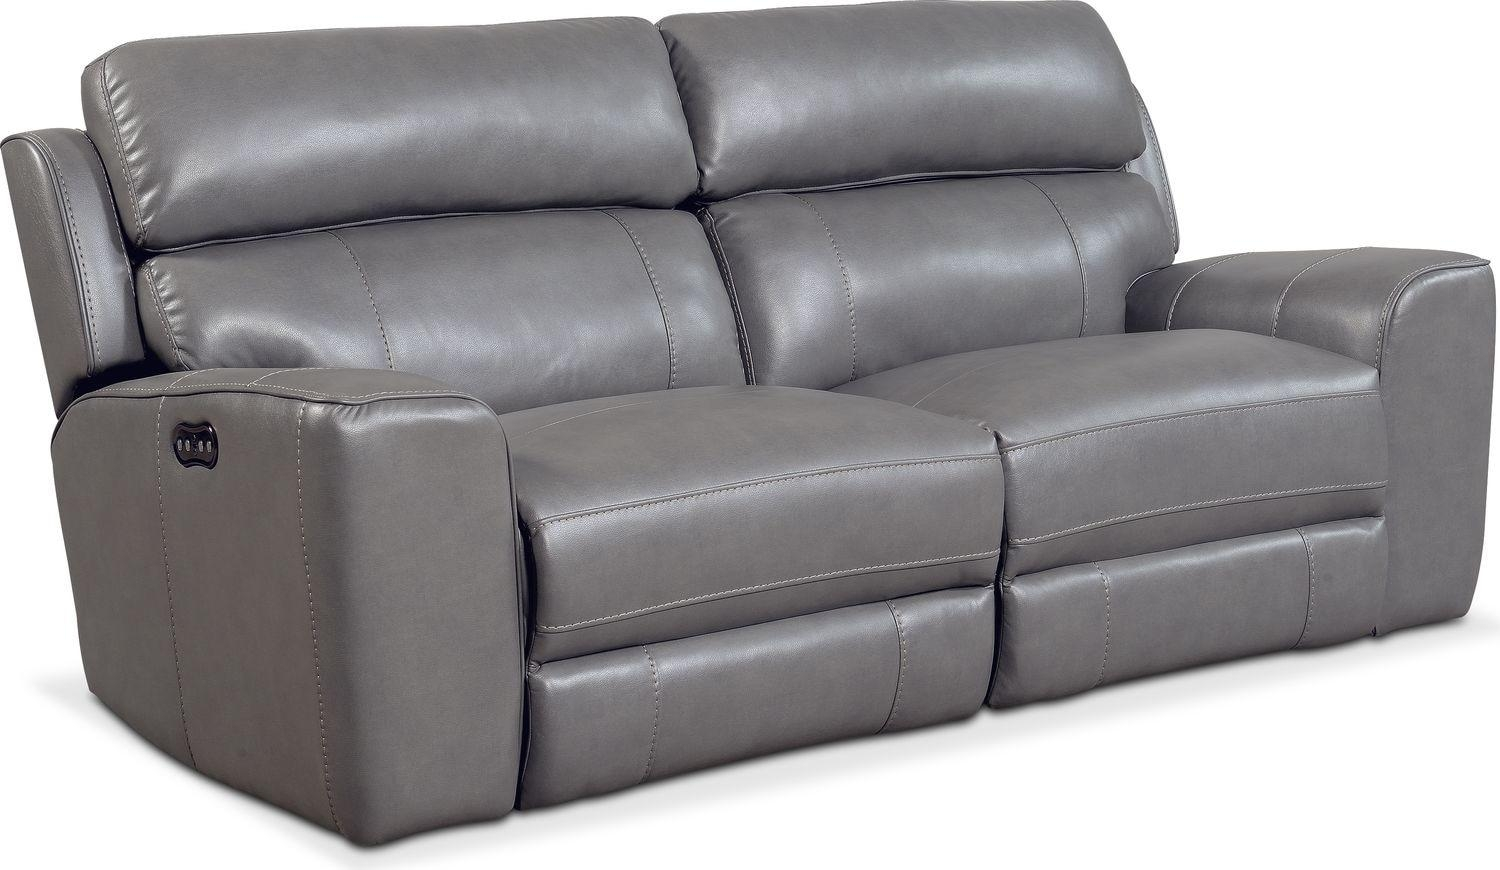 Newport 2 Piece Power Reclining Sofa – Gray | Value City Furniture Pertaining To Newport Sofas (View 9 of 20)